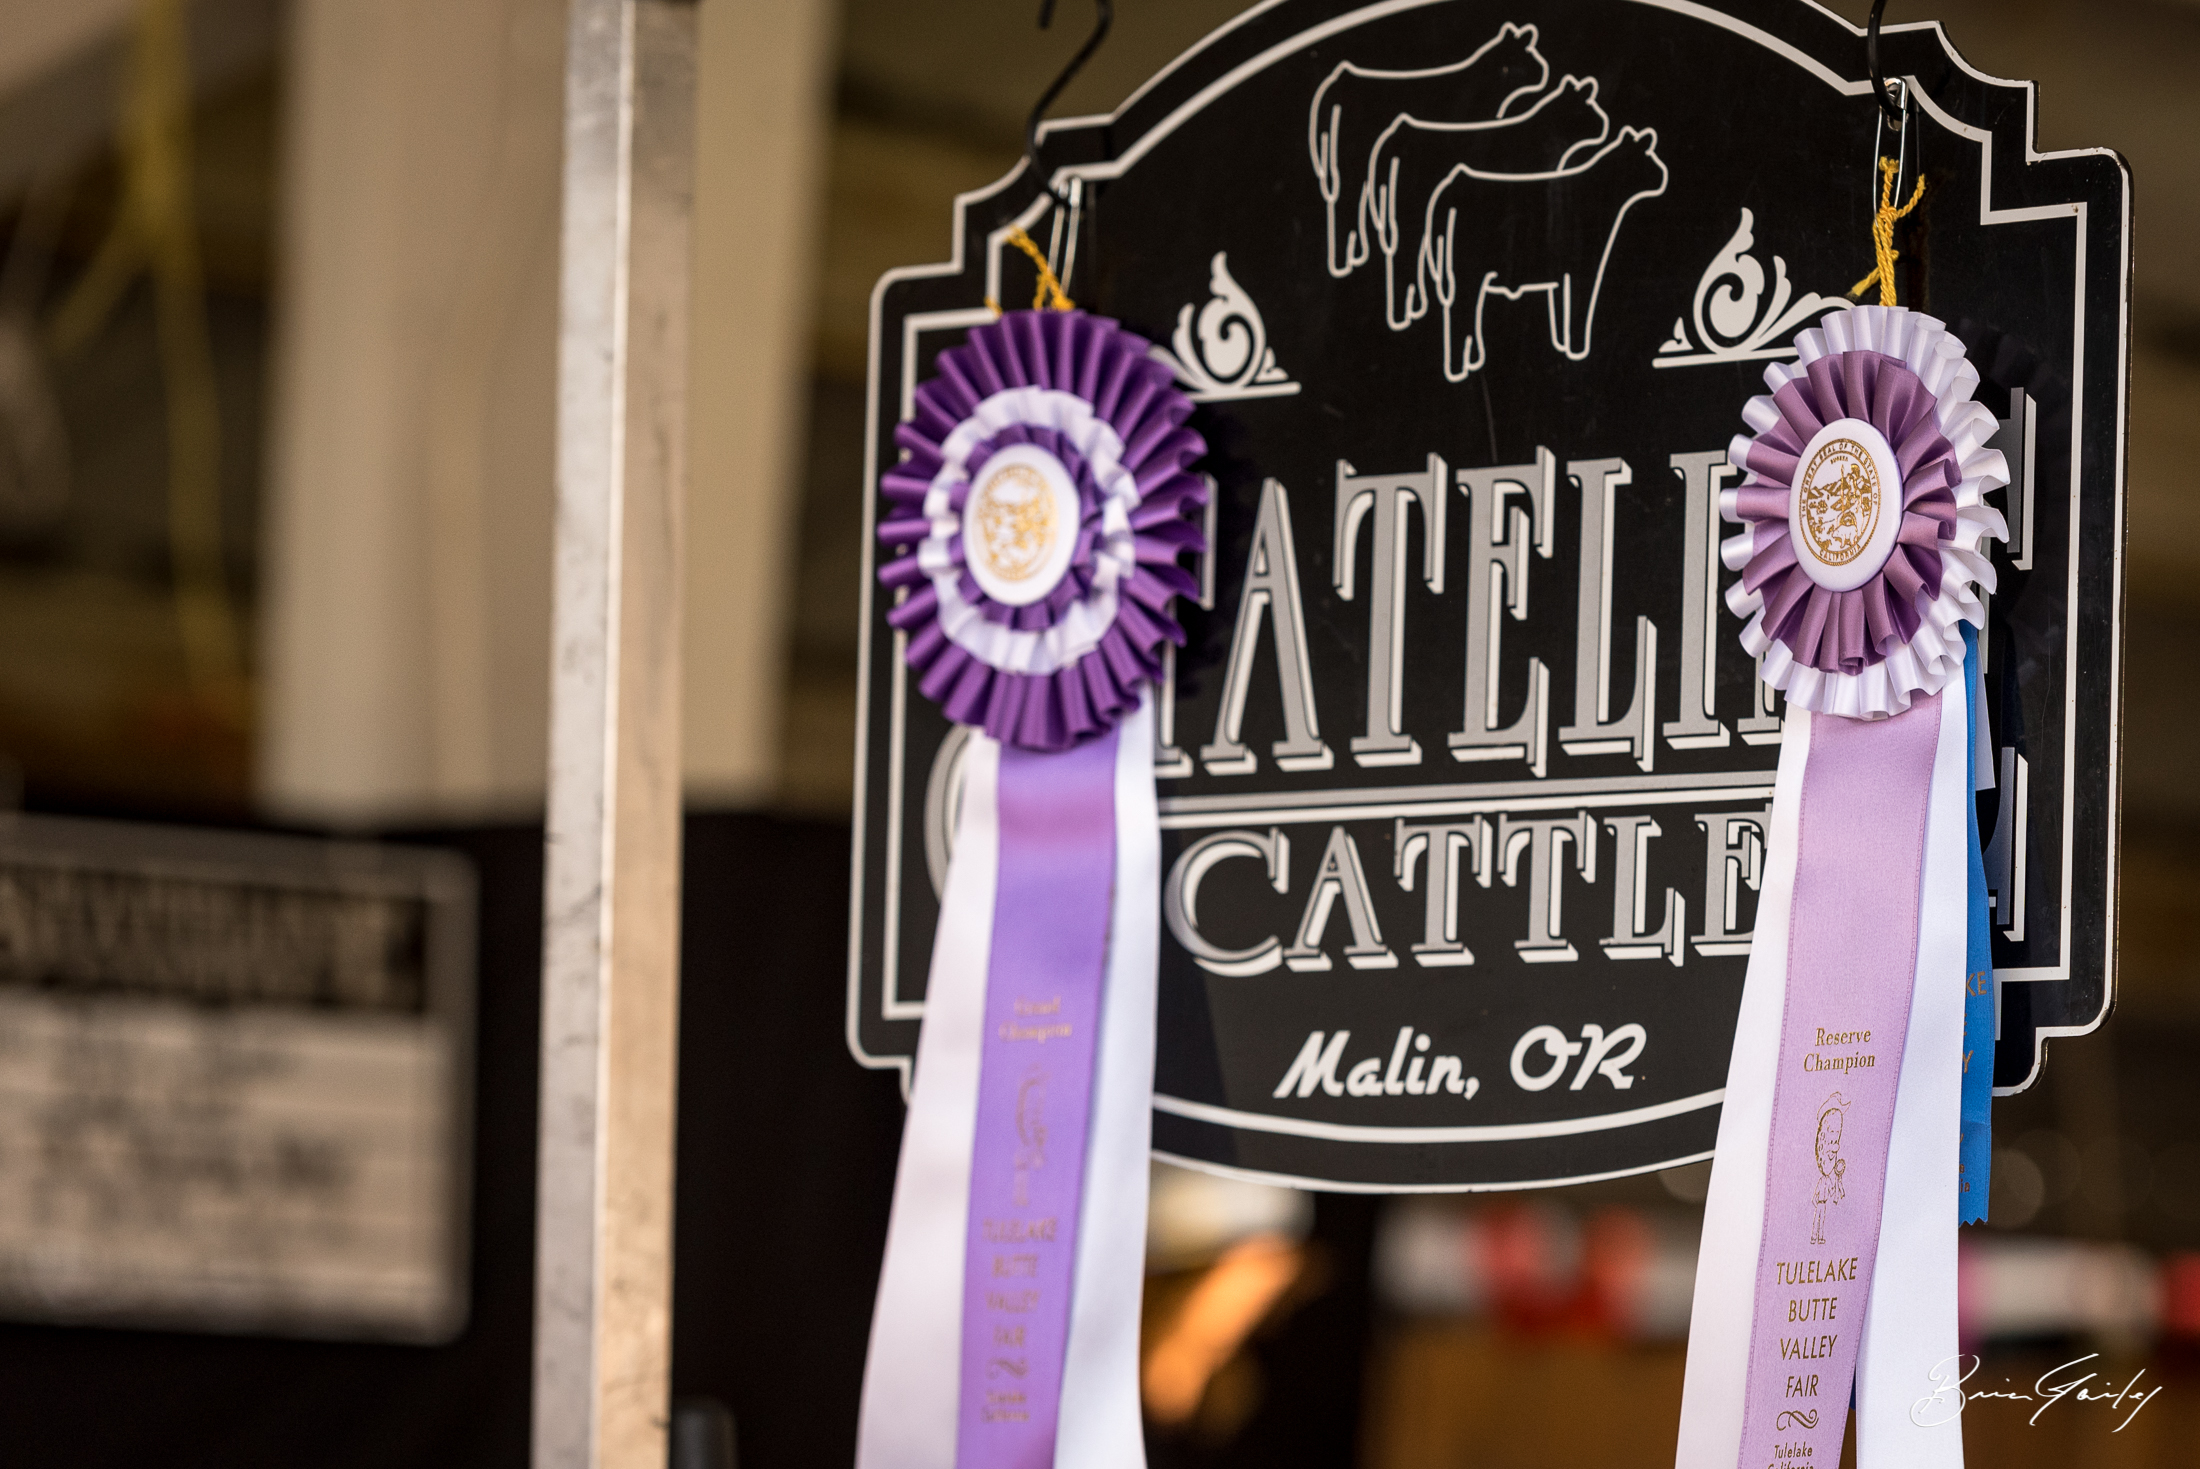 Stateline Cattle Co.  did well at the fair.  Image:  Brian Gailey  Tulelake Butte Valley Fair 2017